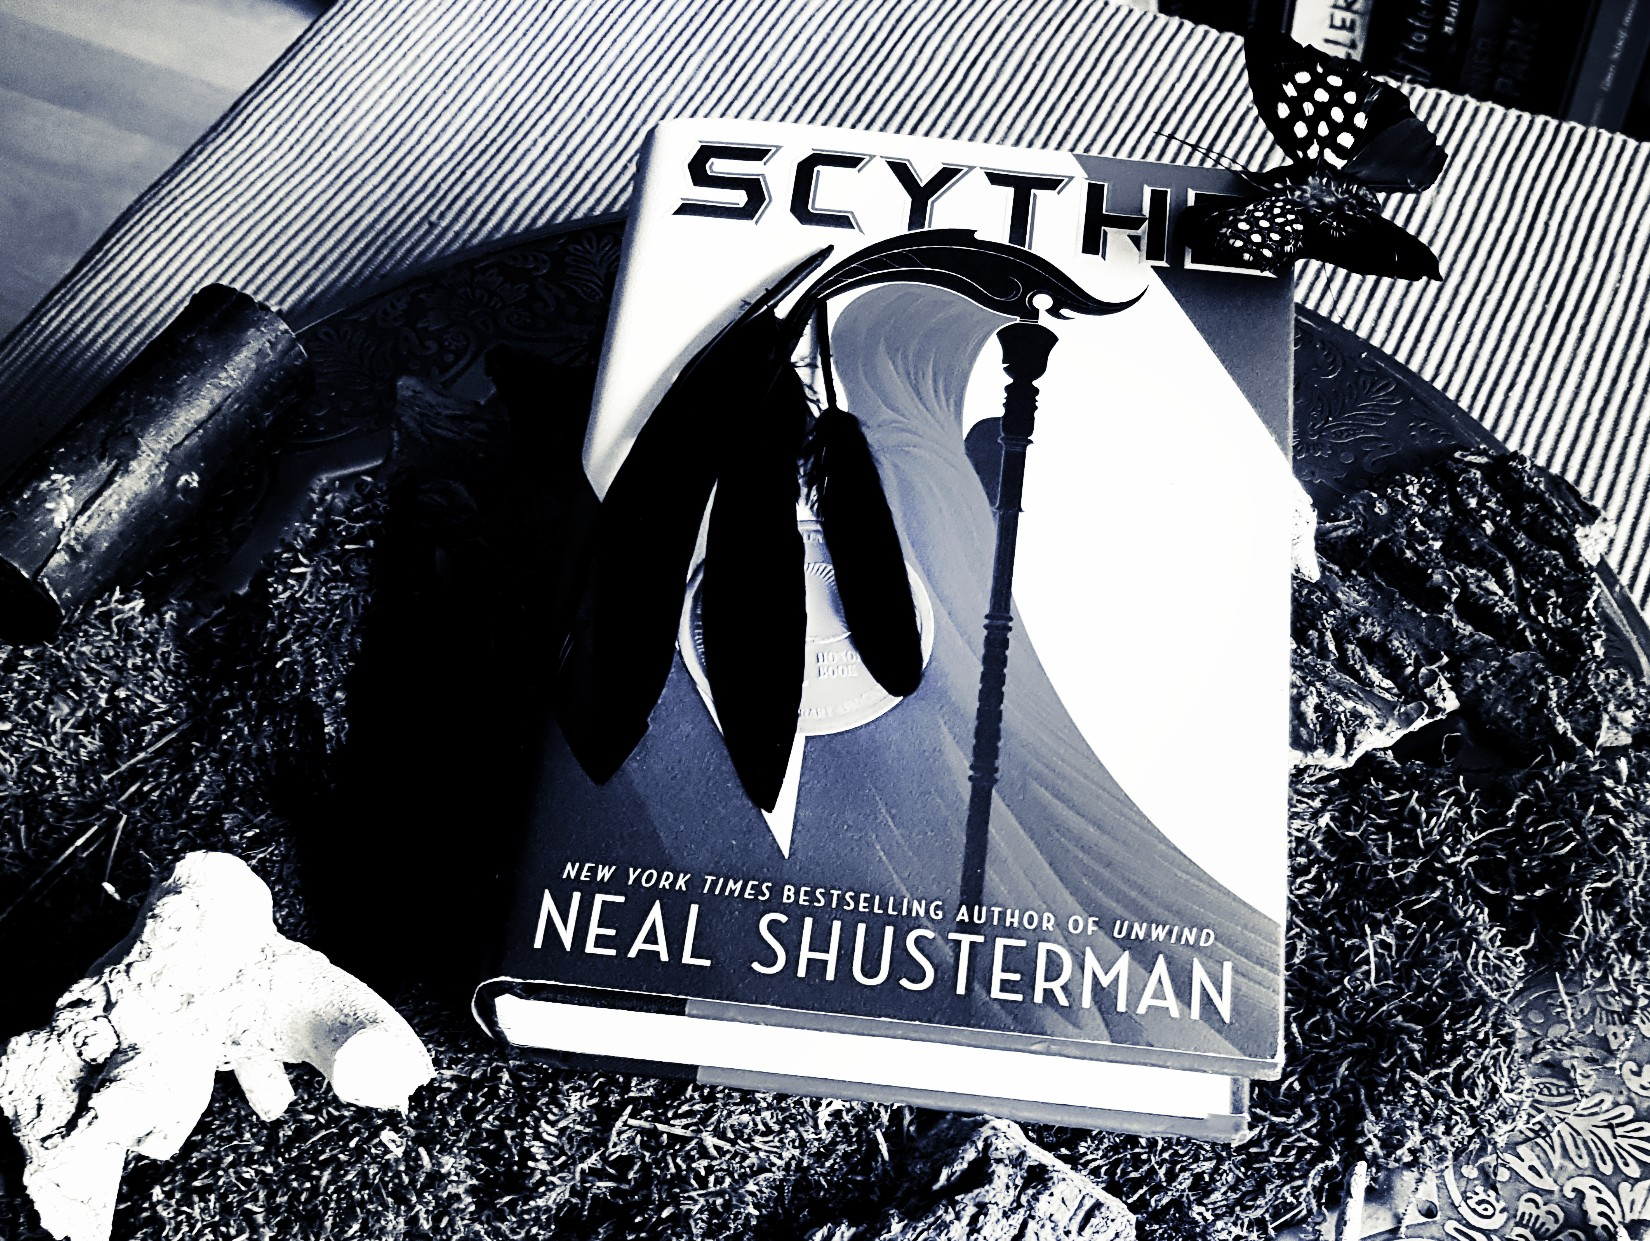 [Rezension] Neal Shusterman – Scythe